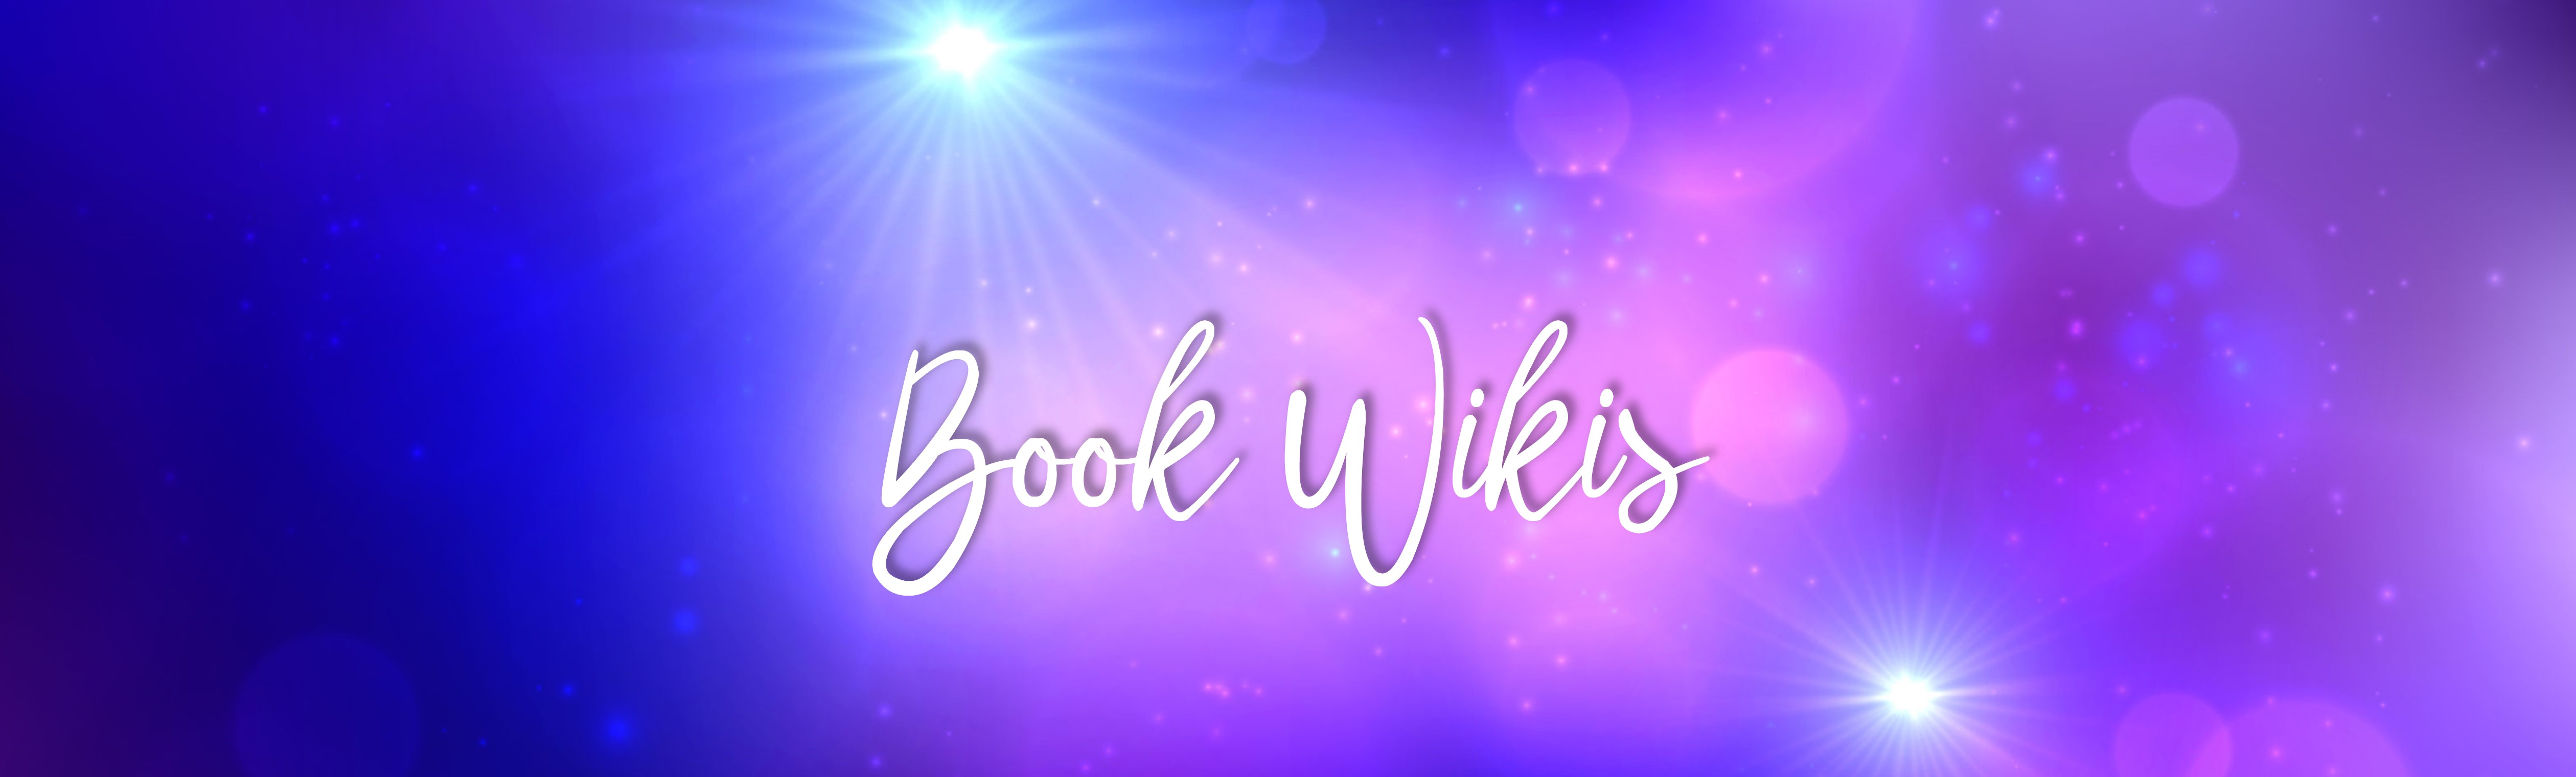 Book Wikis Header